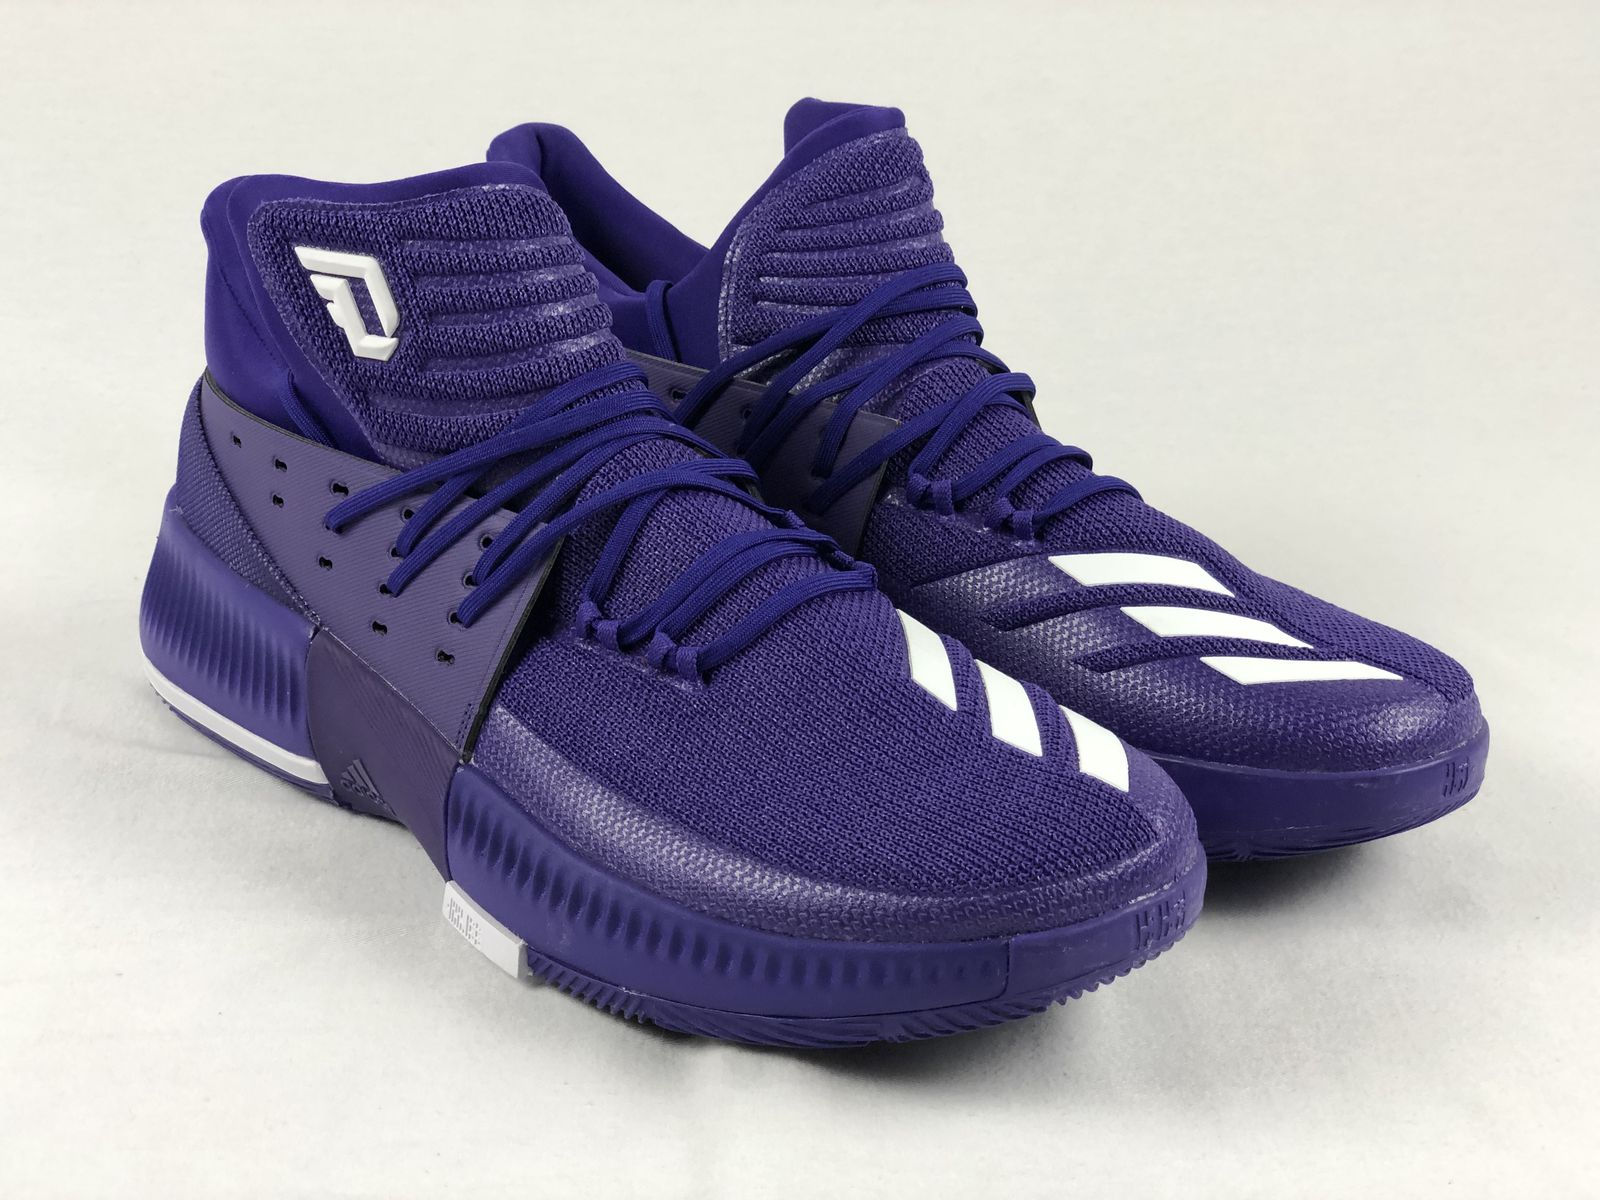 sports shoes eccf2 5cb49 Details about NEW adidas Dame 3 - Purple Basketball Shoes (Men s 18)